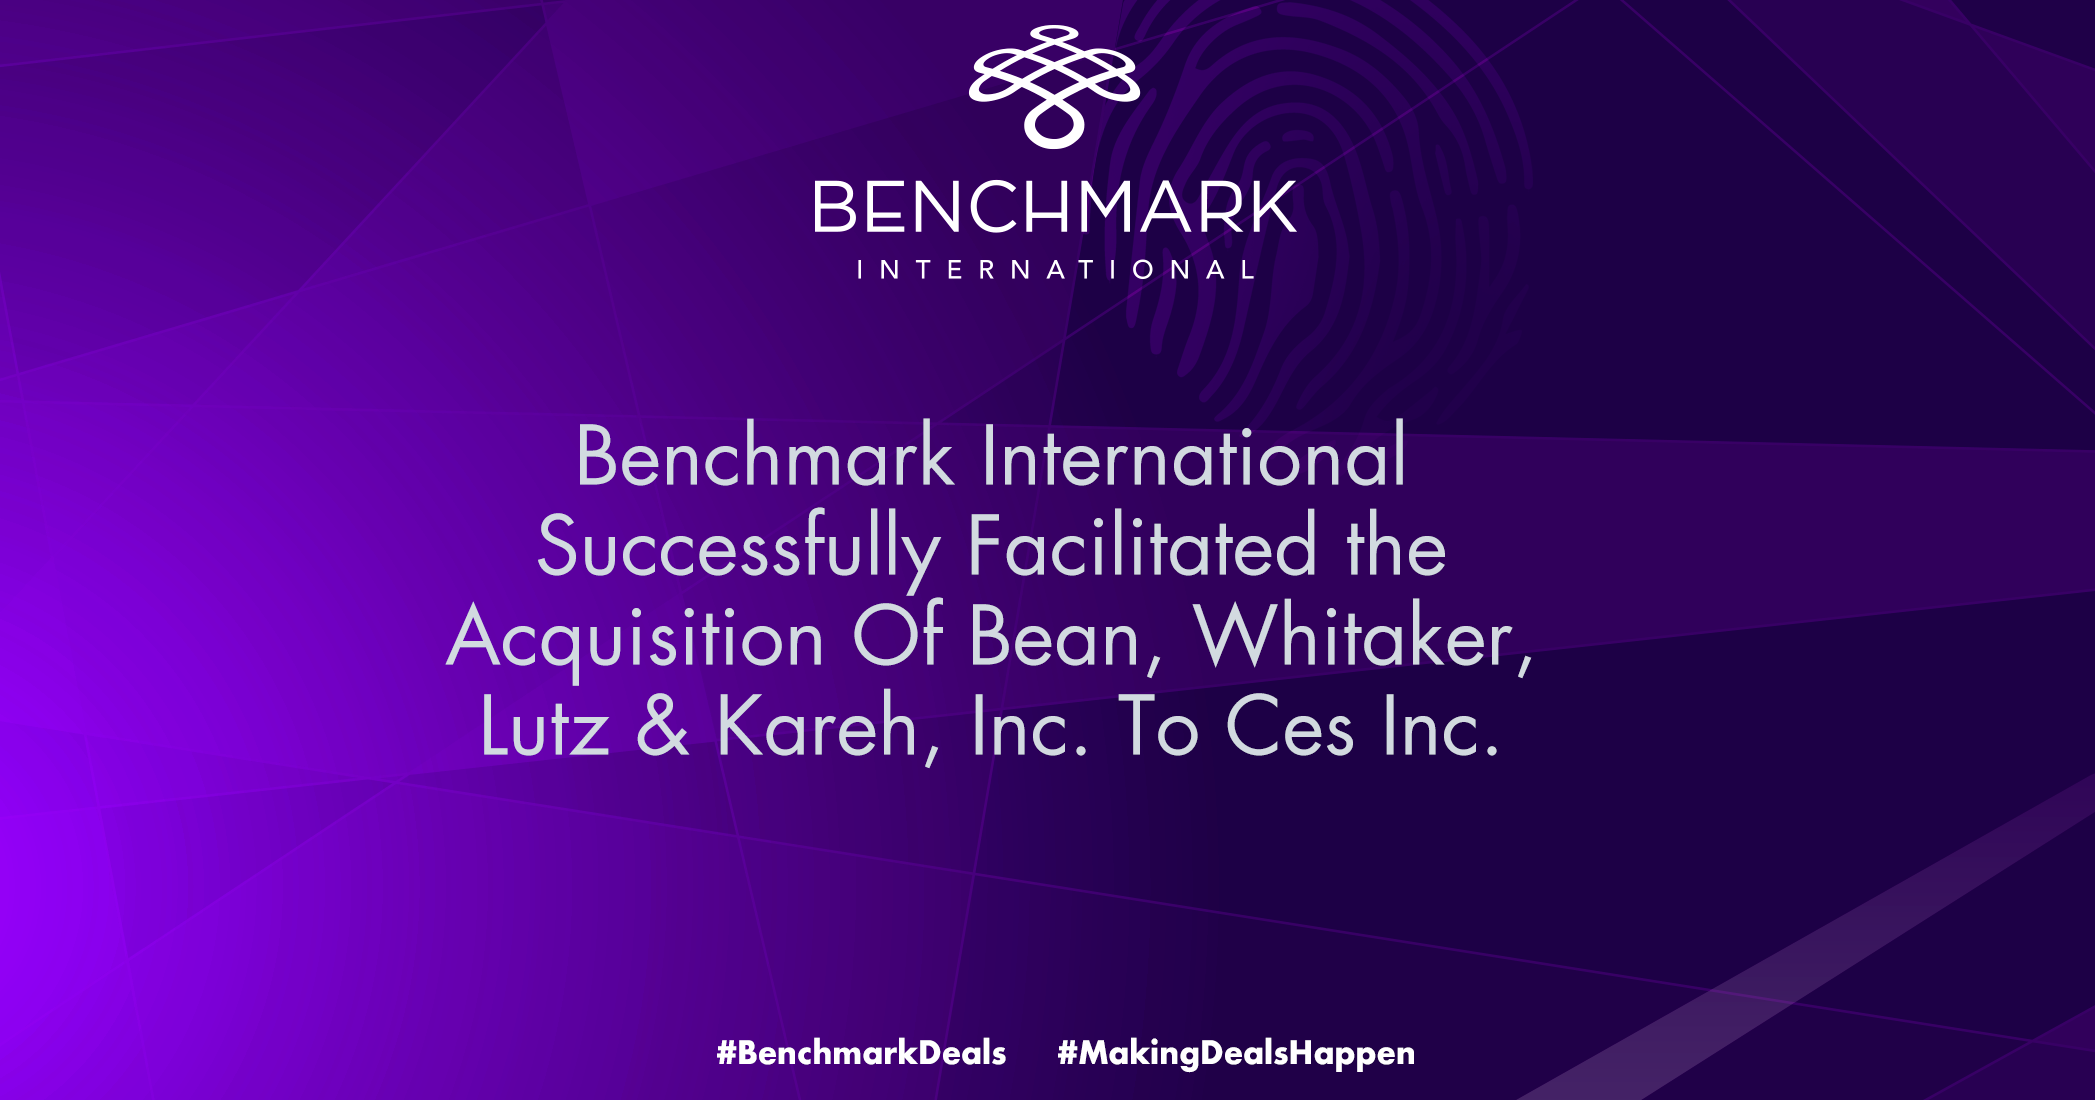 Benchmark International successfully facilitated the acquisition of Bean, Whitaker, Lutz & Kareh, Inc. to CES inc.